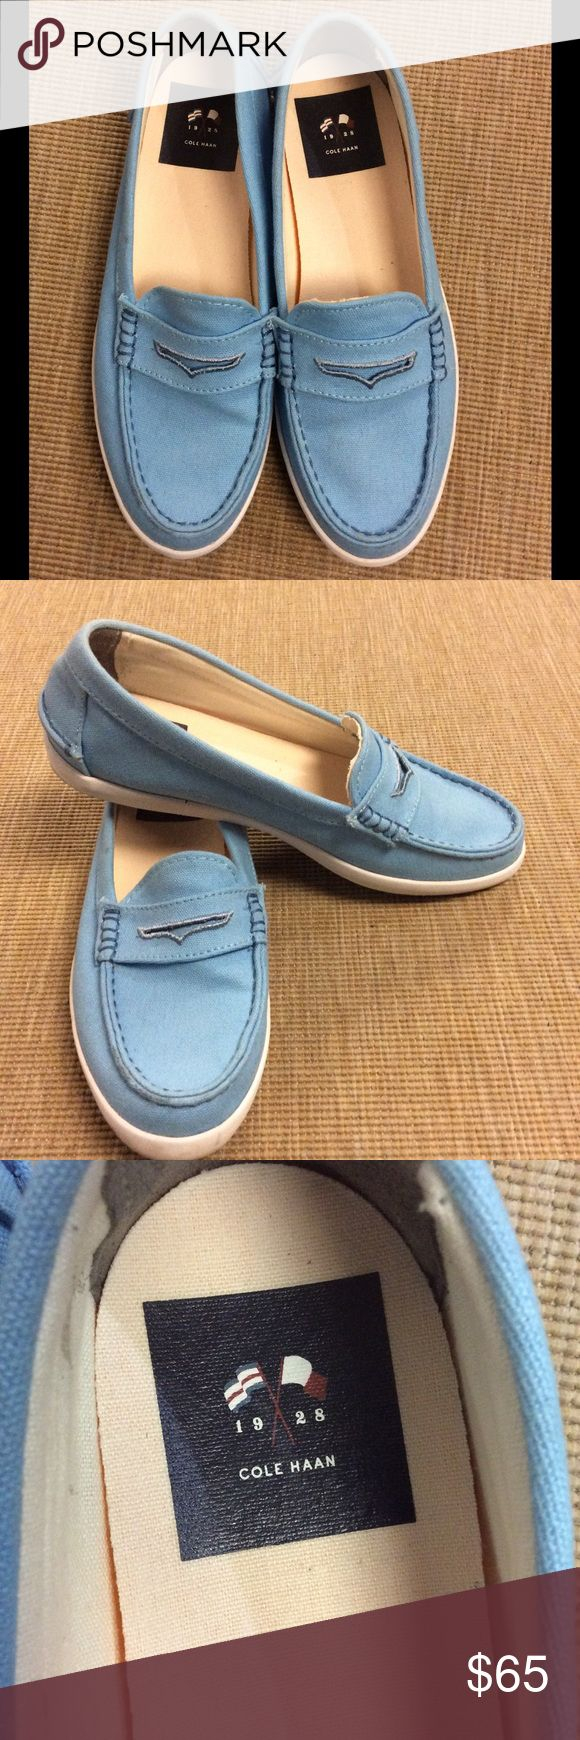 Cole Haan PINCH WEEKENDER Women US 8.5 Blue Loafer In excellent condition. Cole Haan Shoes Flats & Loafers